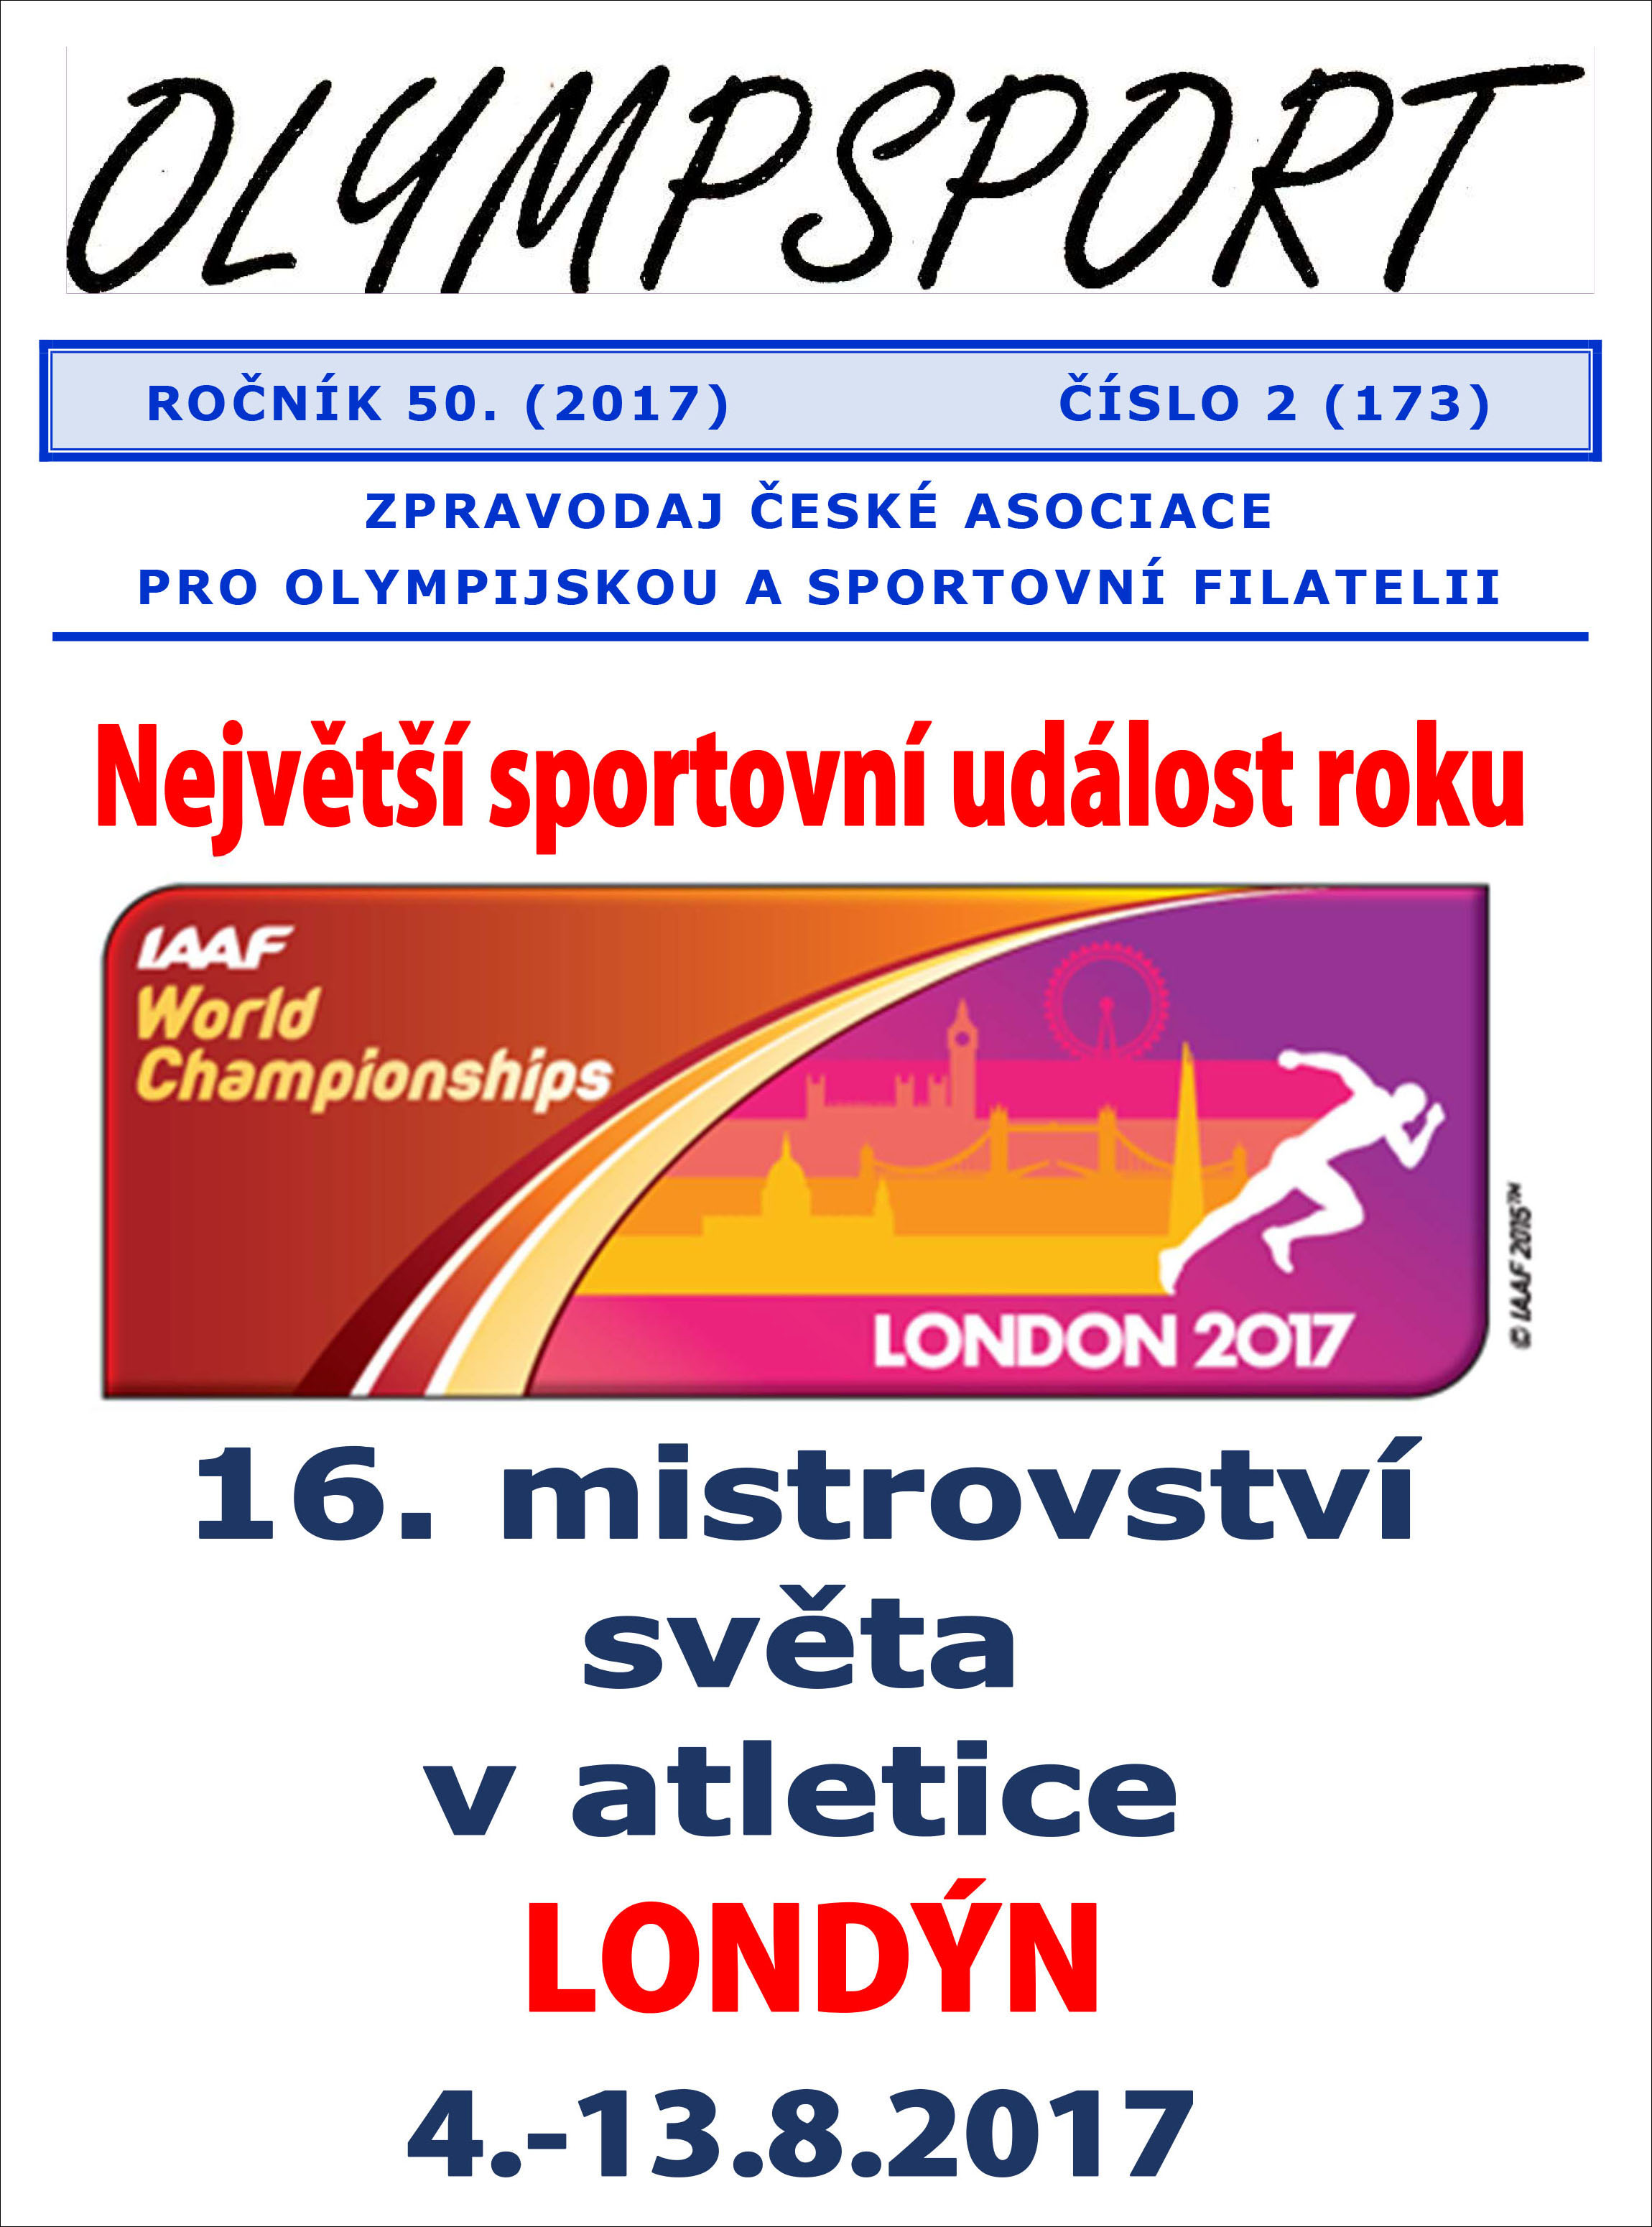 Philatelic magazines and periodicals New issue of the newsletter OLYMPSPORT 2017/2 (173)